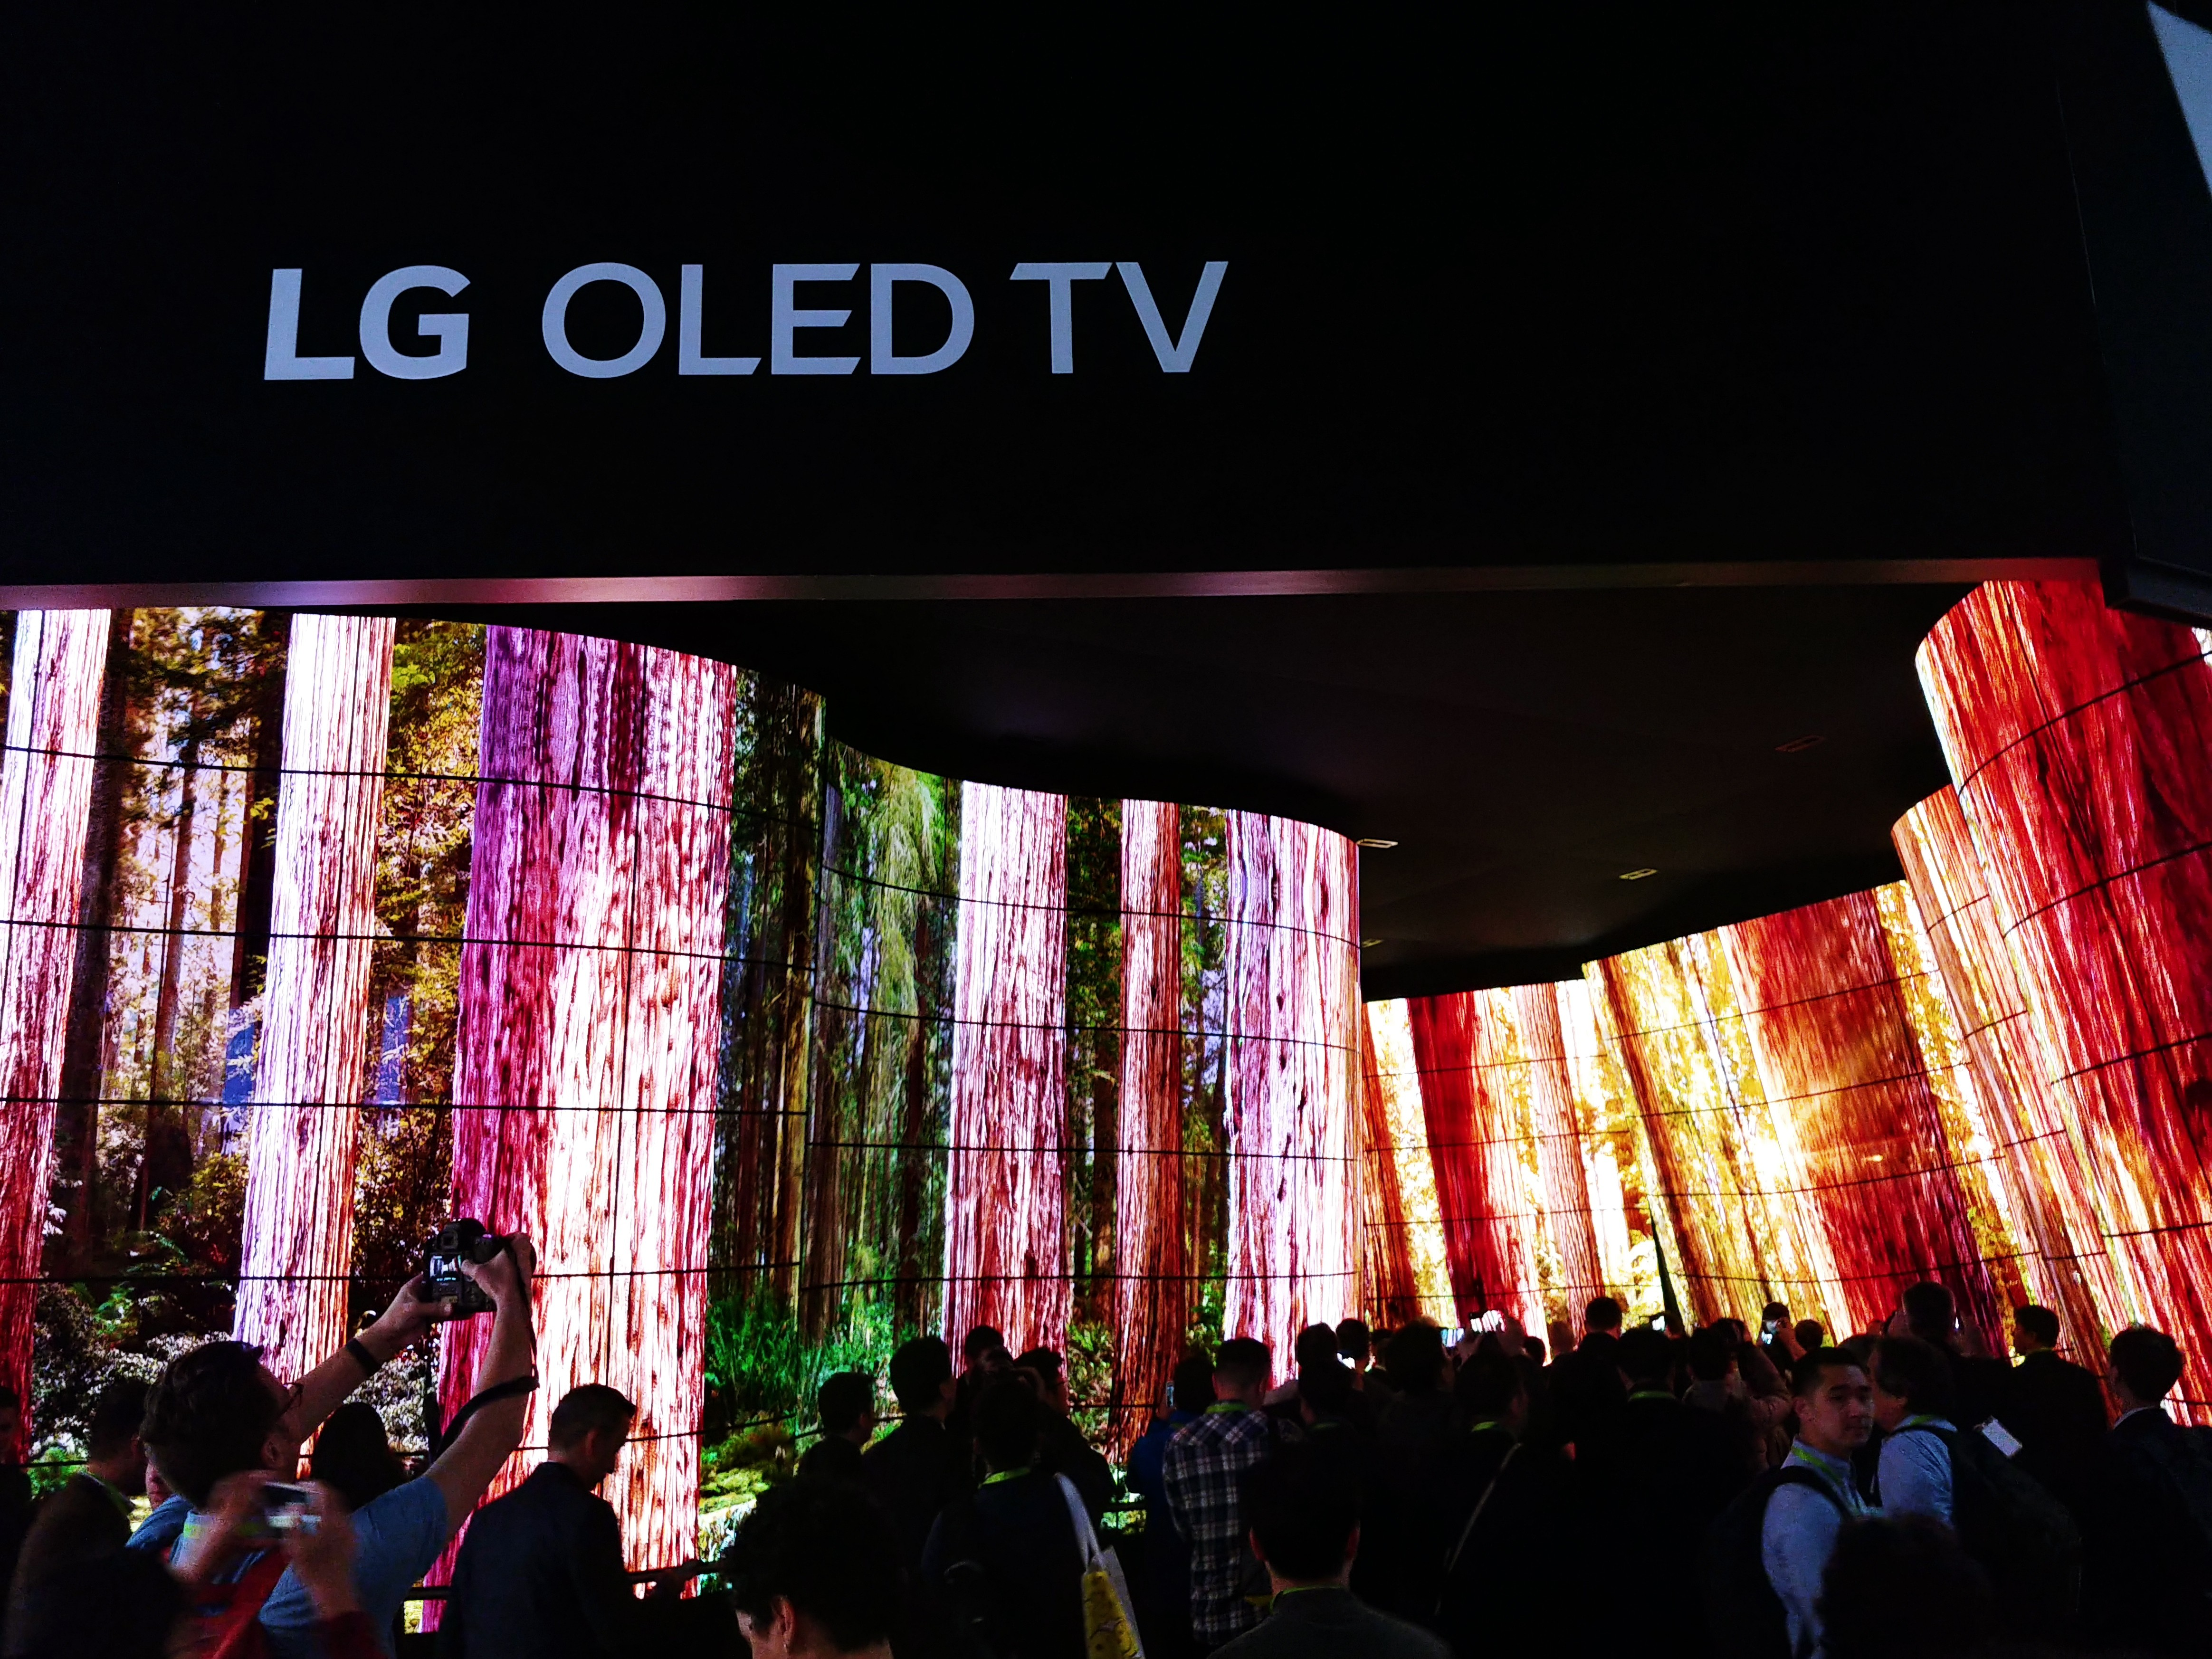 People standing before the entrance of the LG OLED Canyon and taking photos, LG OLED TV sign is visible above the canyon.